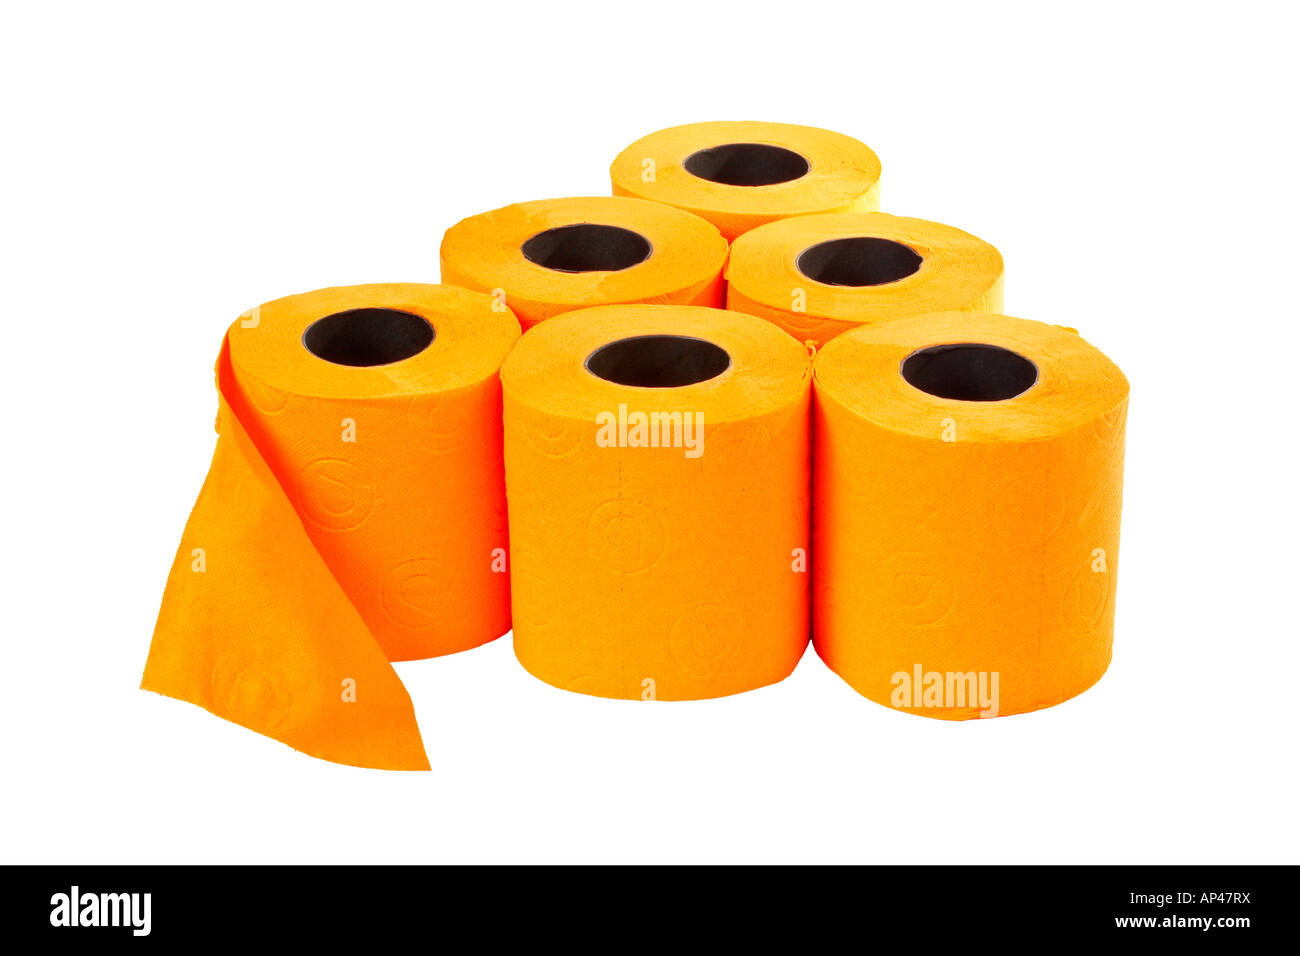 Some rolls of toilet paper on a white background - Stock Image